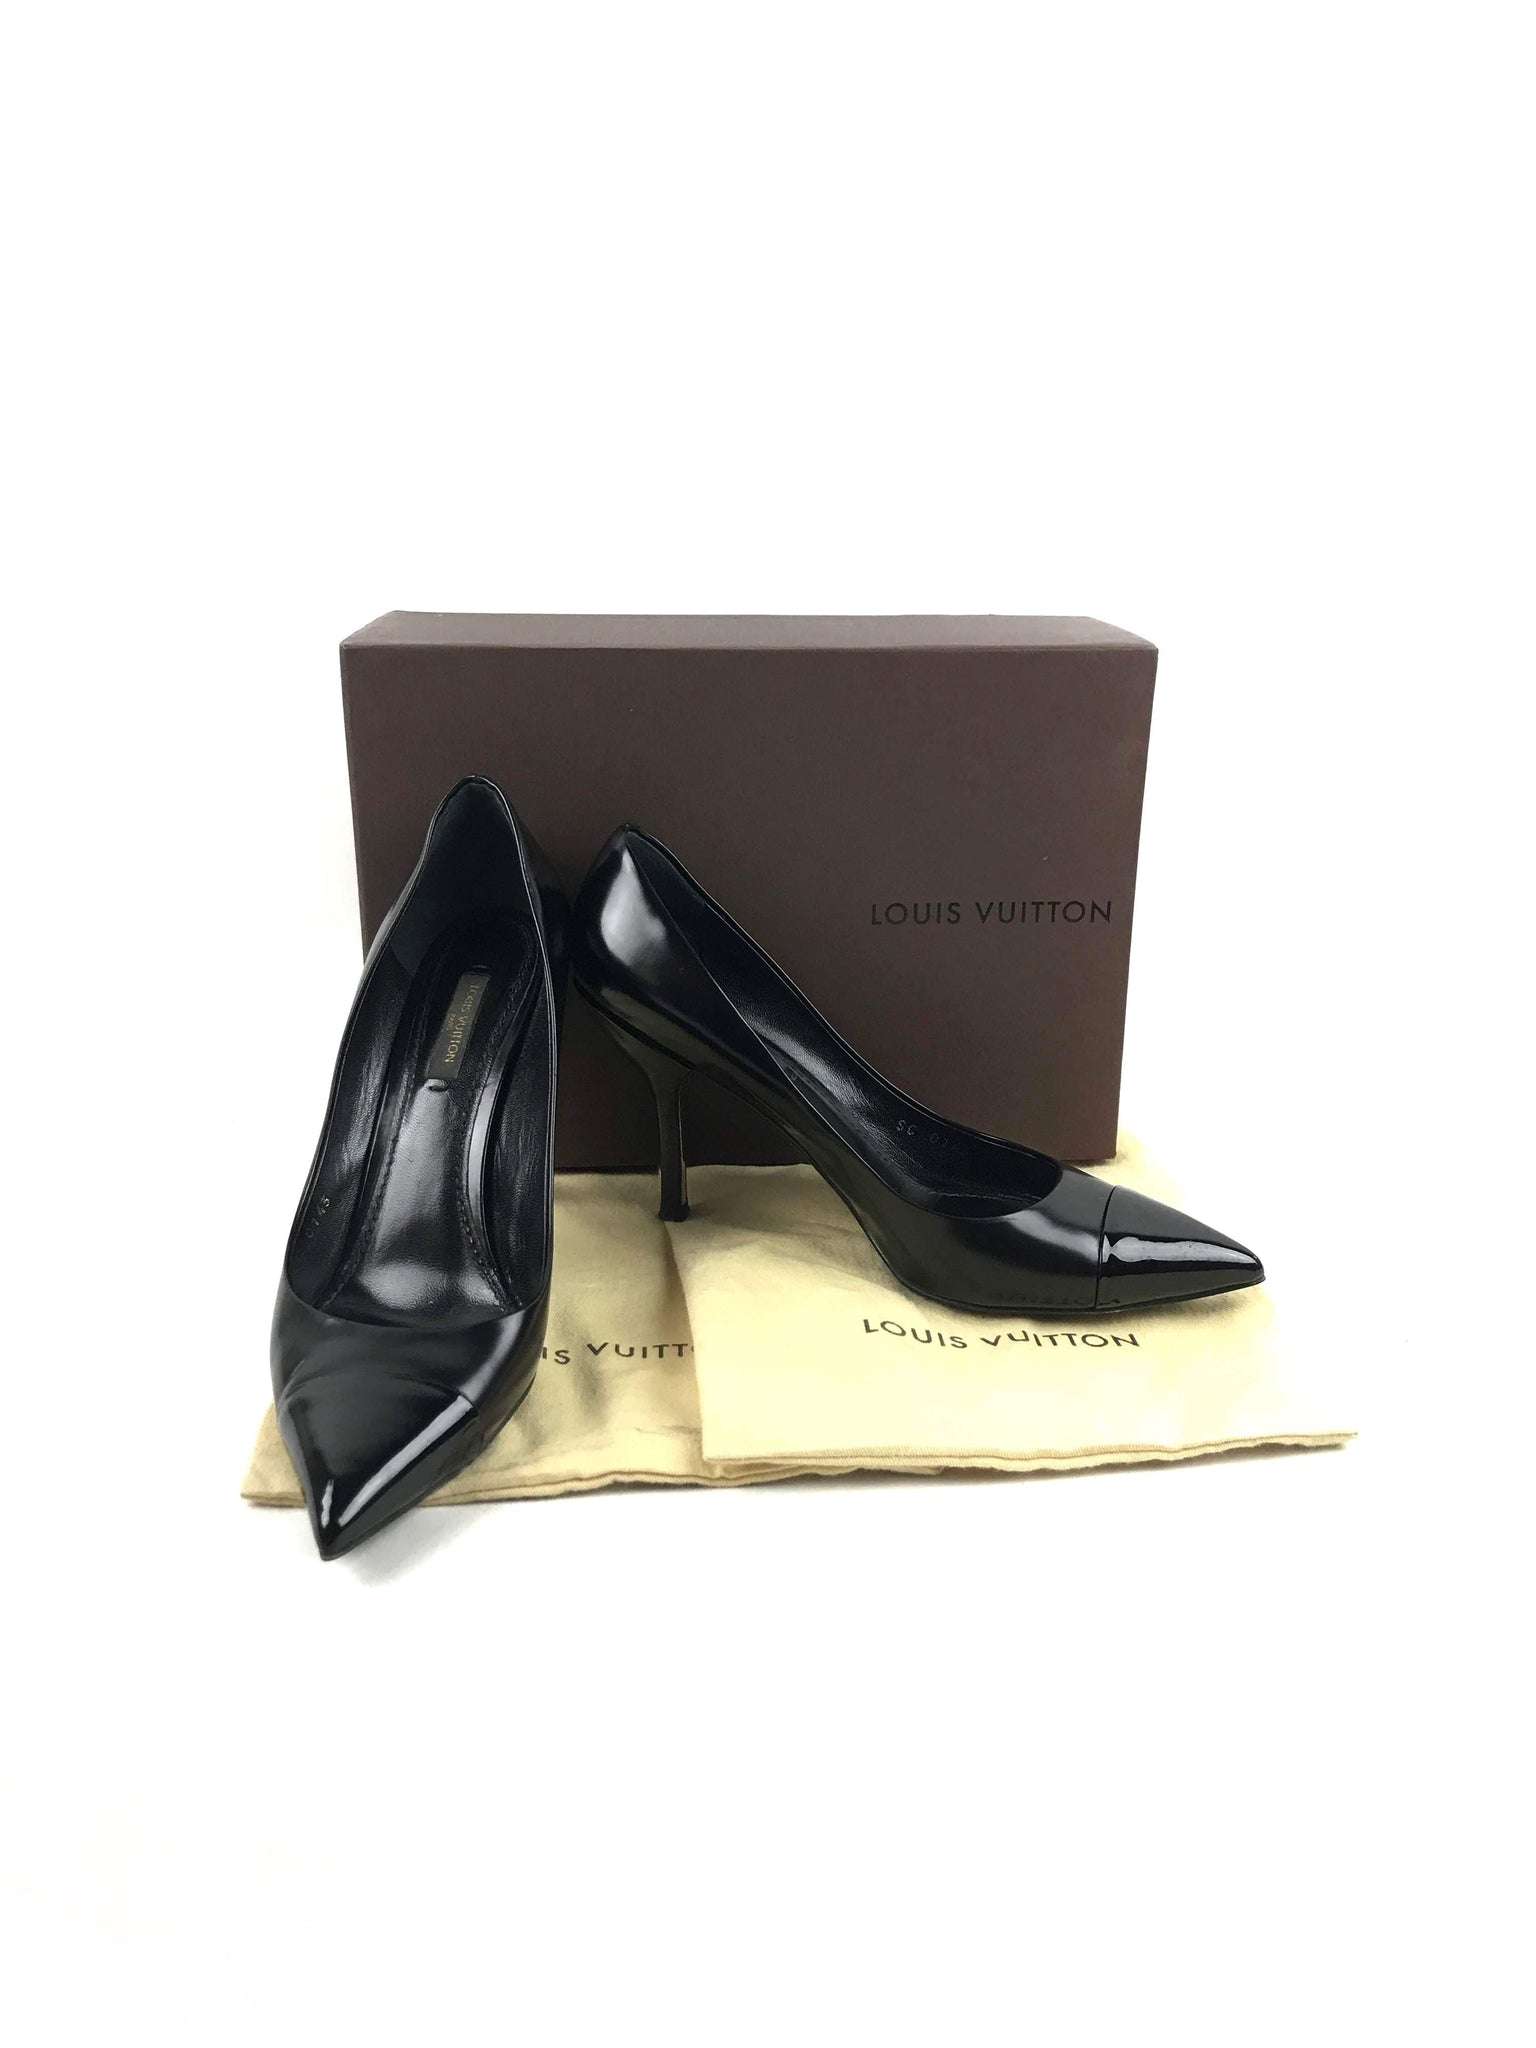 LOUIS VUITTON Black Leather Pointed Toe Pumps